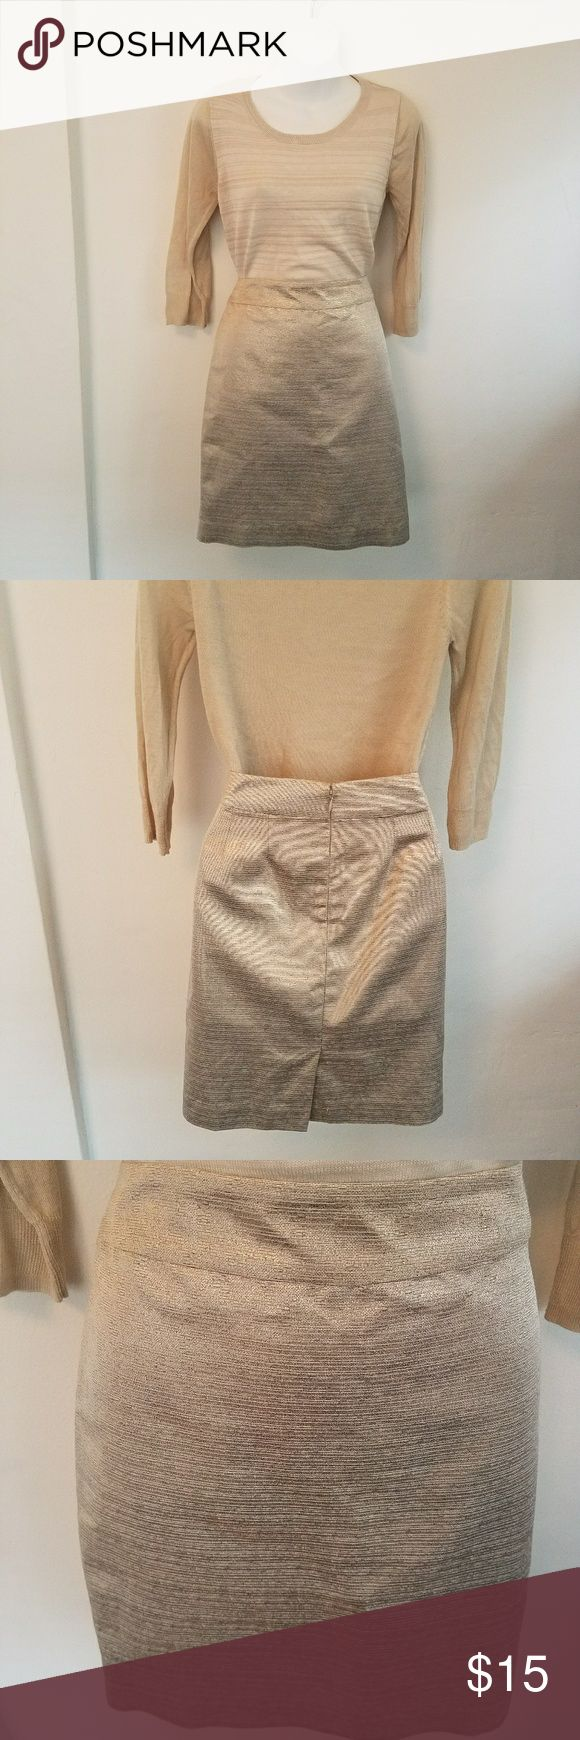 """Ann Taylor Gold Pencil Skirt NWOT NWOT Ann Taylor Gold Pencil Skirt. Size 4  Beautiful gold pencil skirt has just the right amount of sparkle. Measures 22"""" from waist to hem Ann Taylor Skirts"""